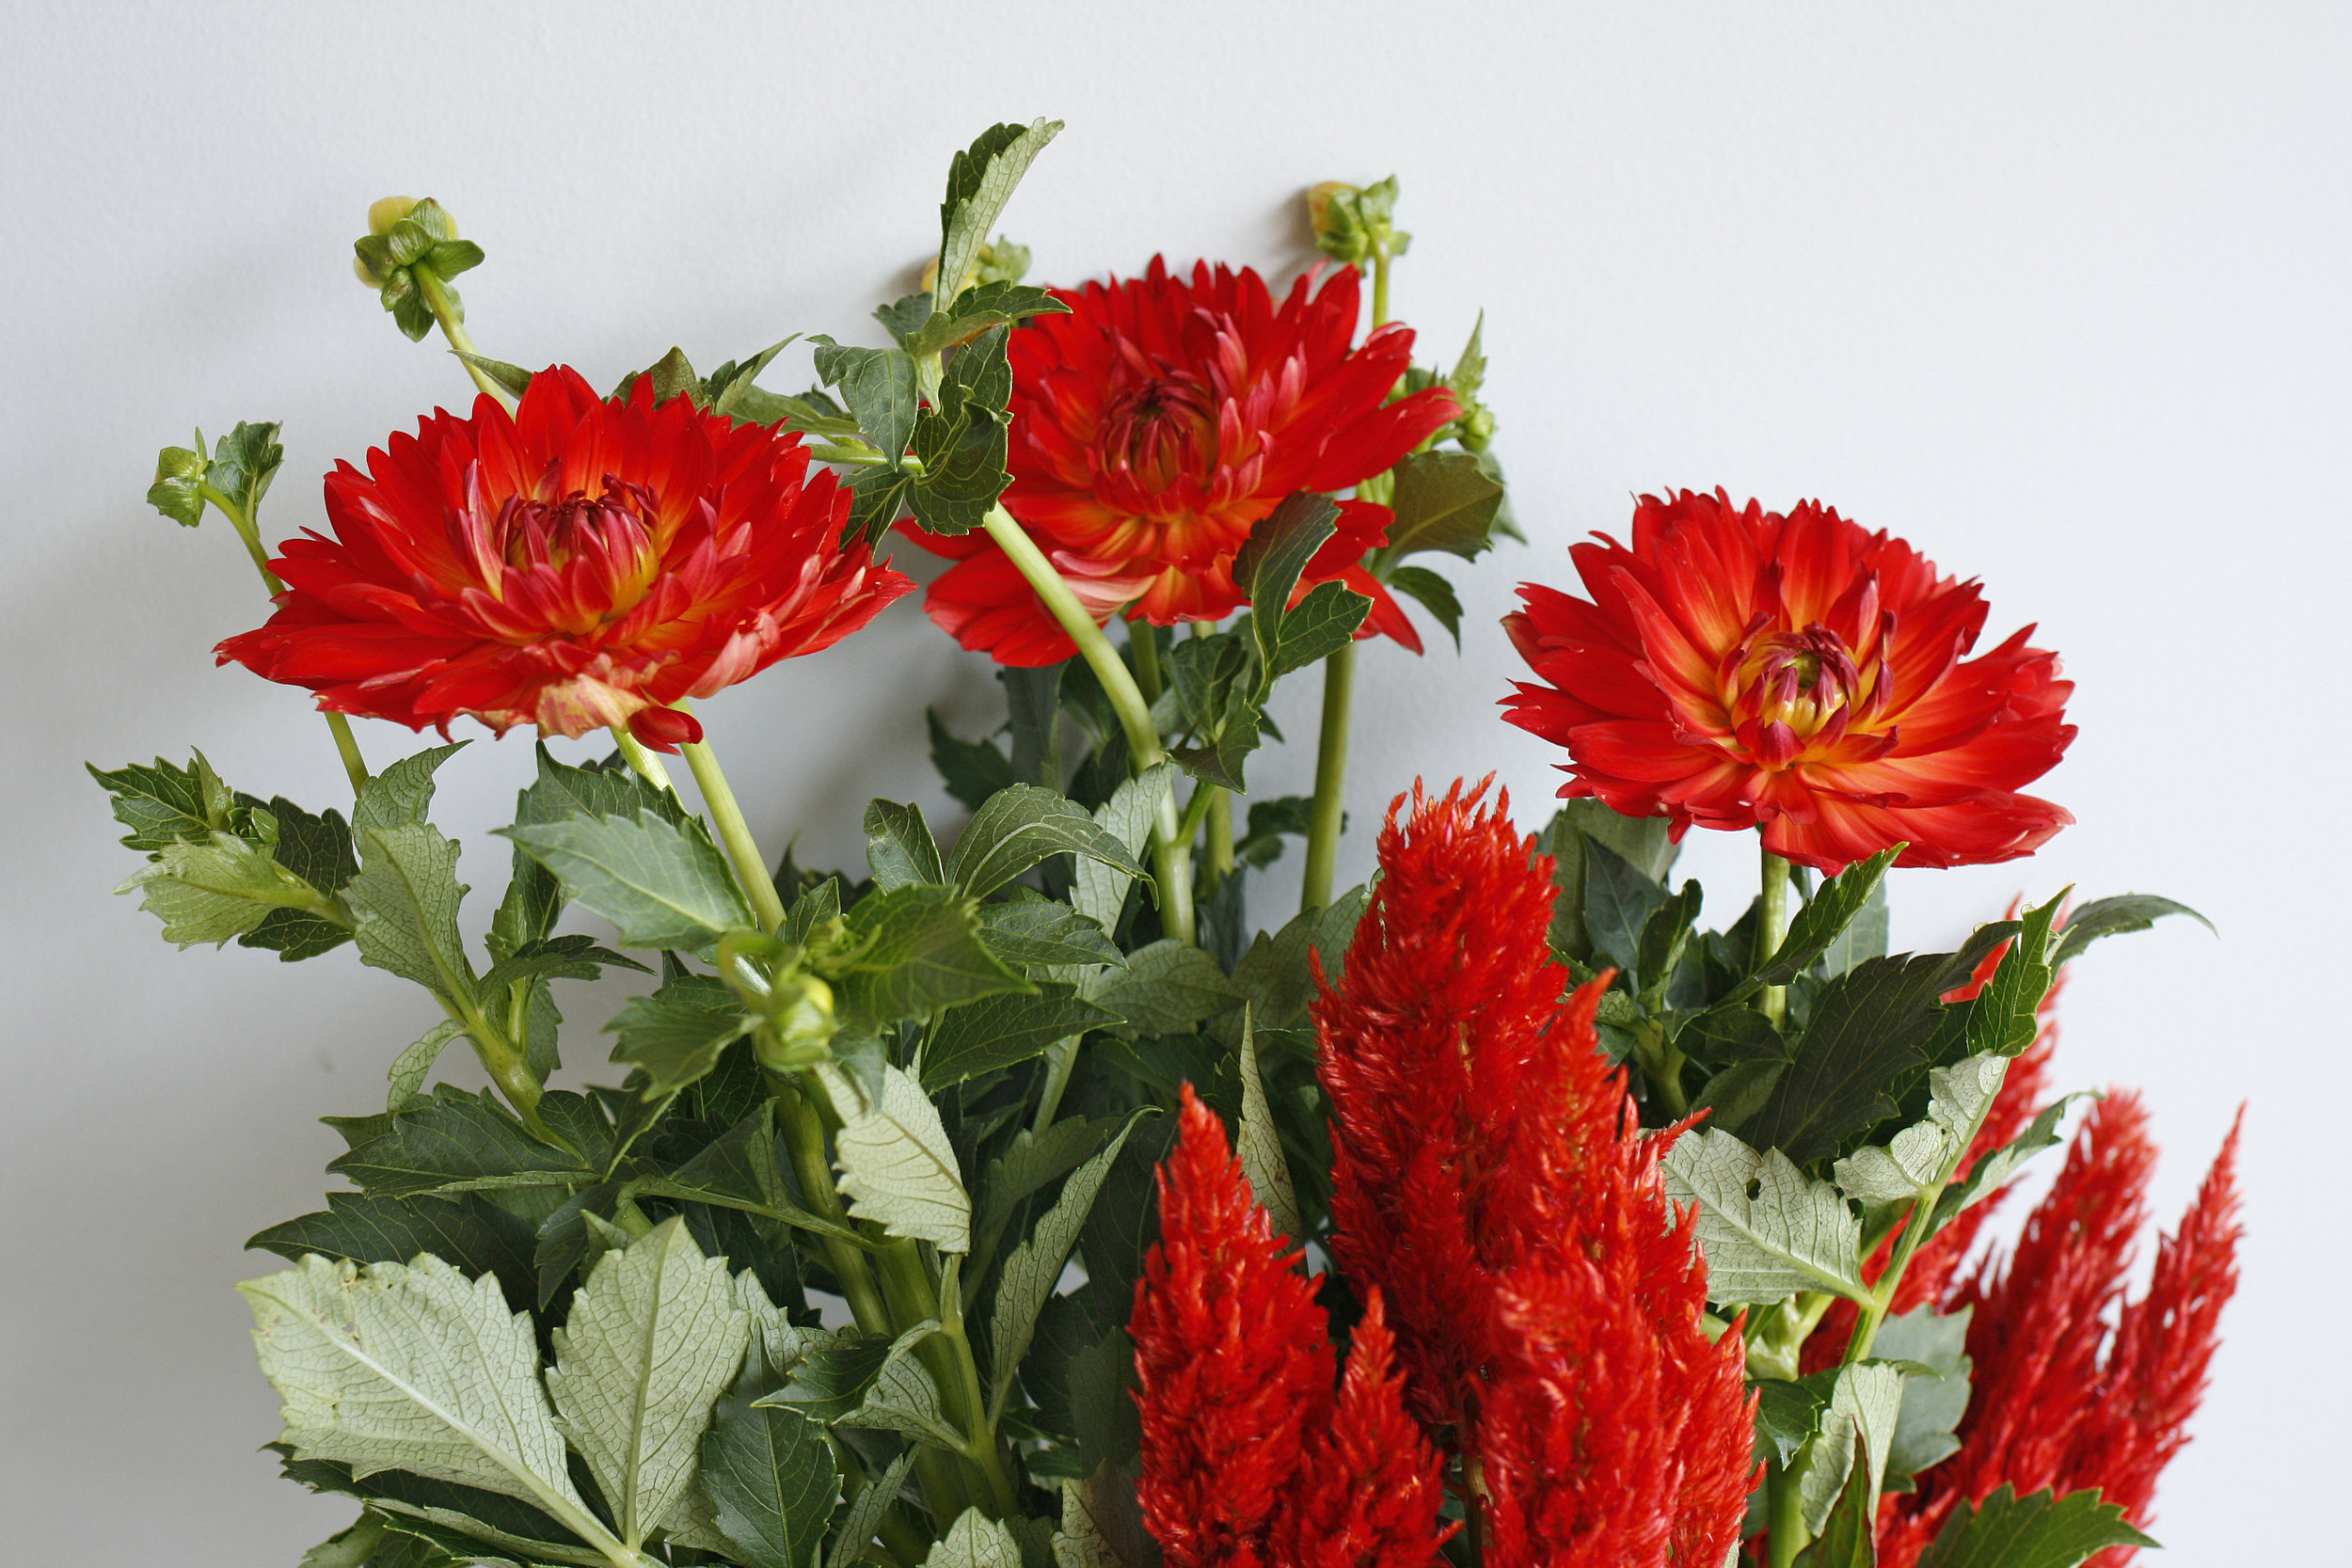 Local Dahlia and celosia